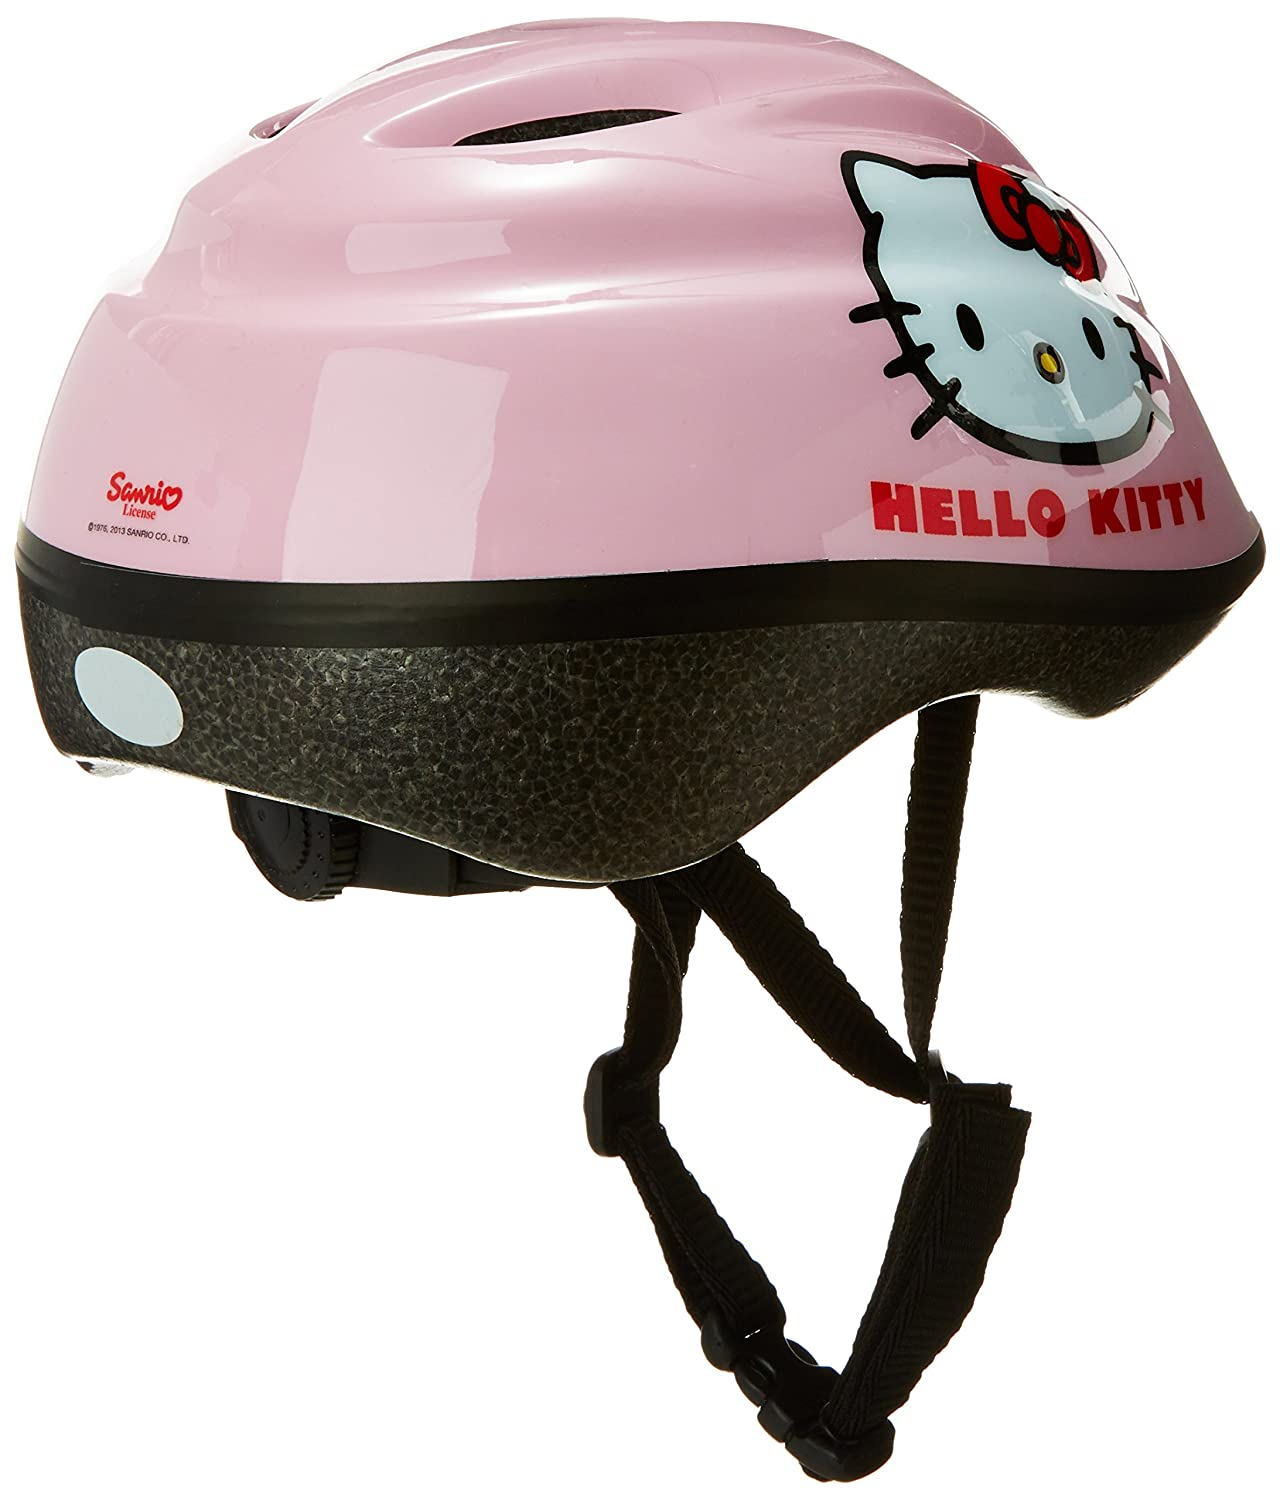 Hello Kitty 802085 - Casco infantil para bicicleta, Color rosa, Talla M (46-53 cm): Amazon.es: Deportes y aire libre